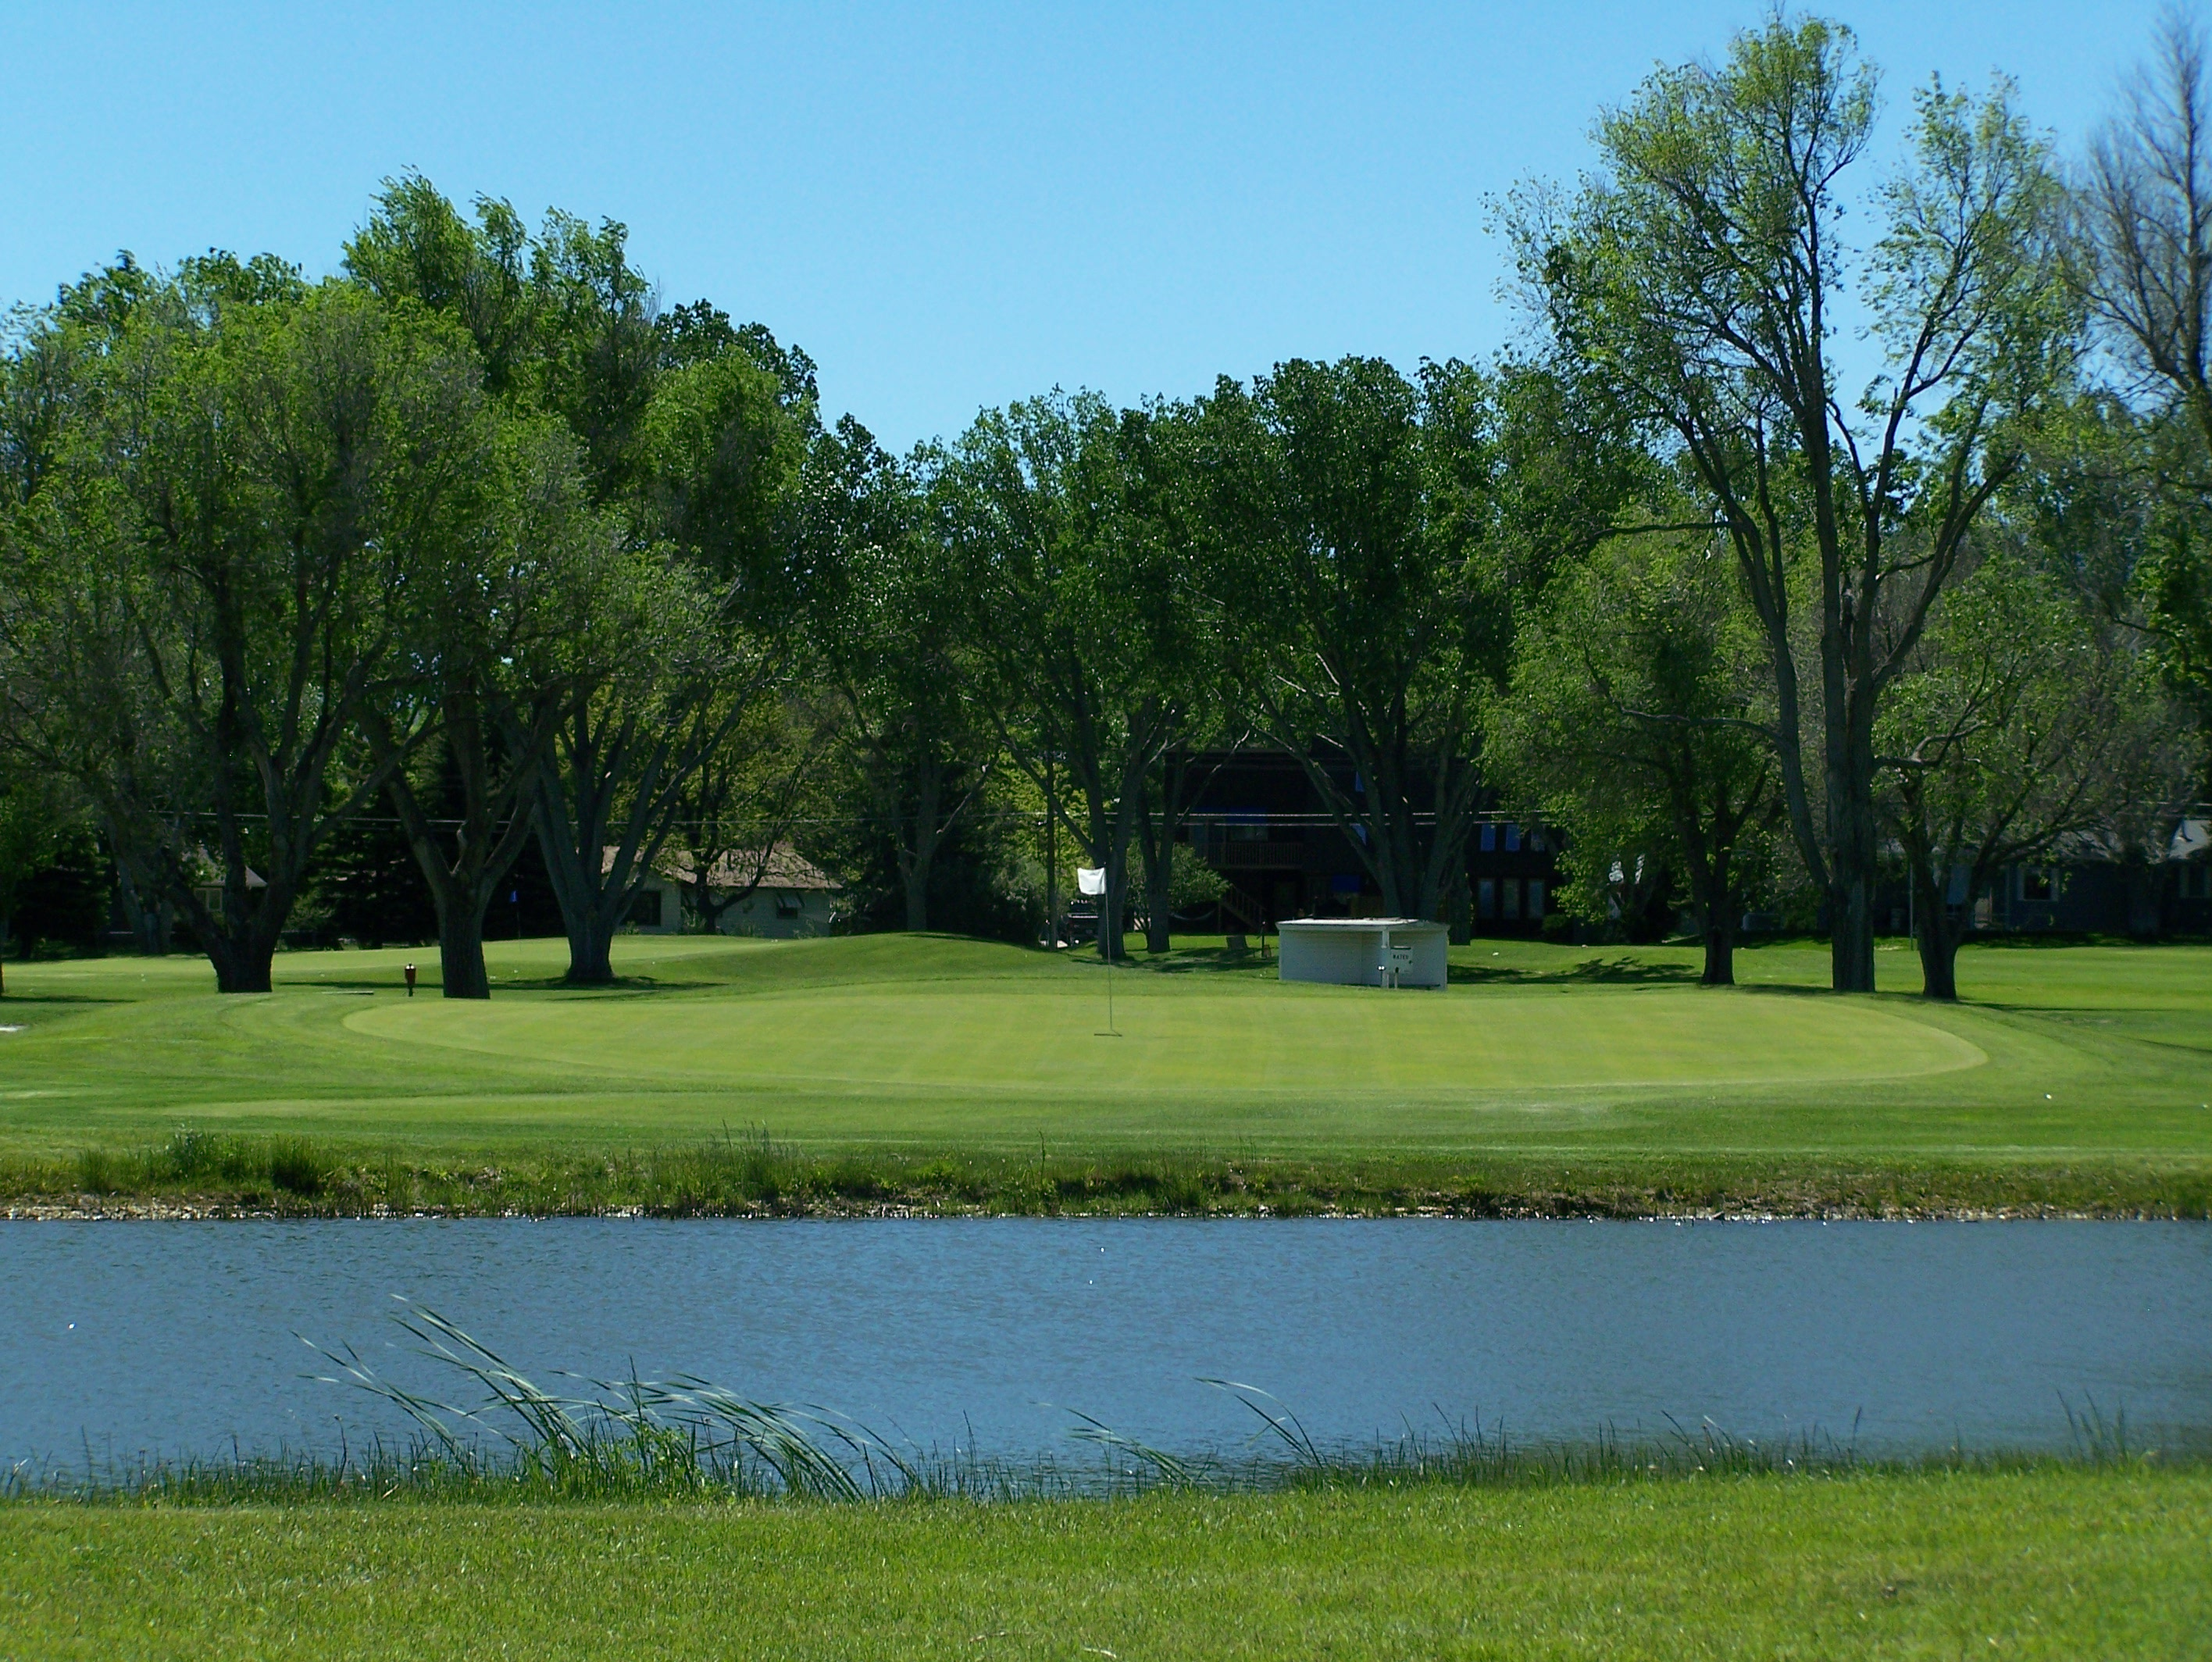 Paradise Valley Country Club image 3